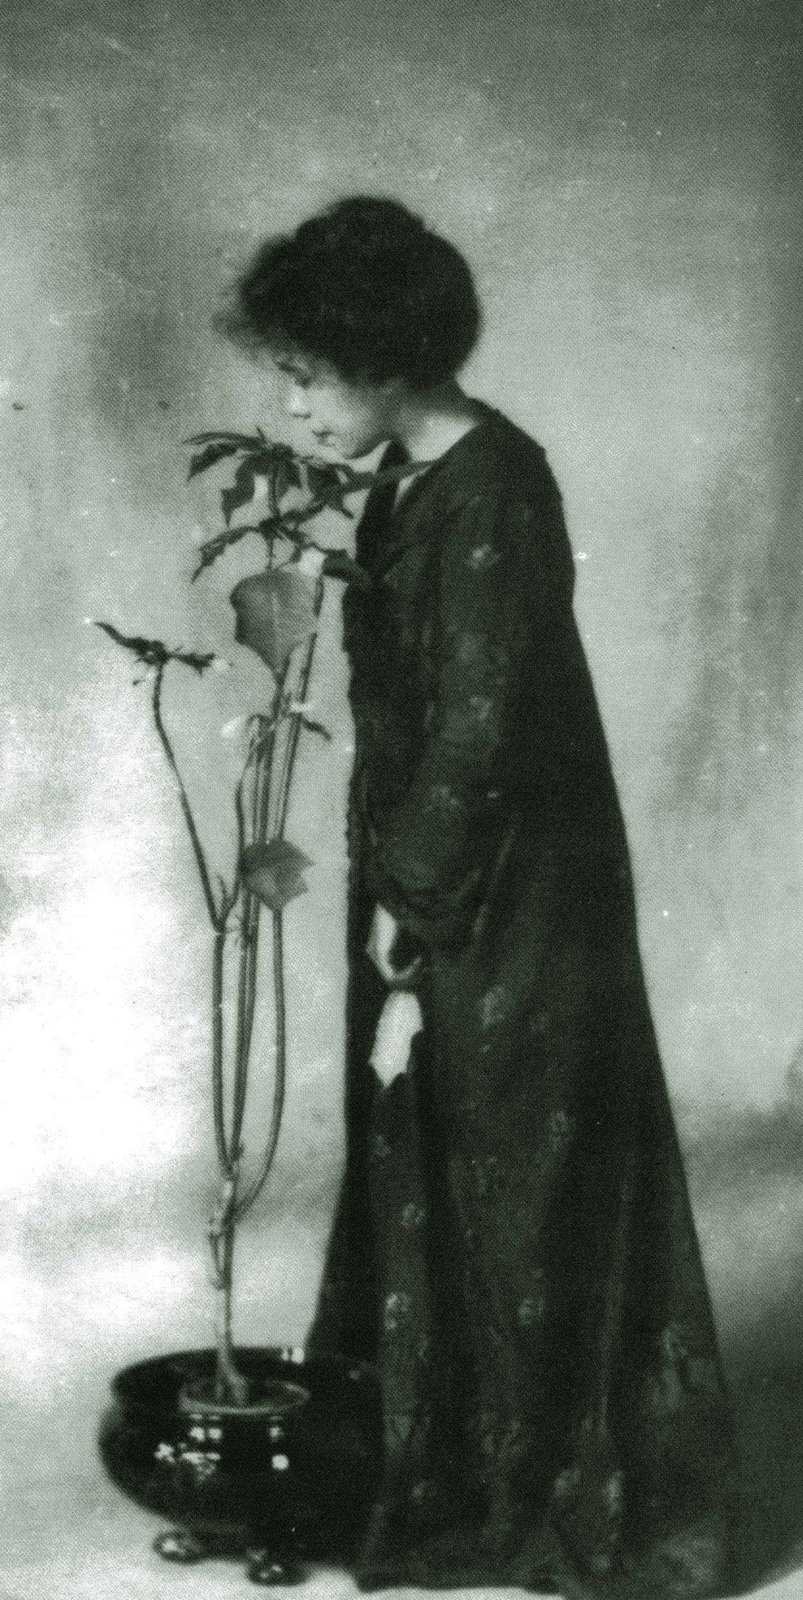 Image of Jane Reece from Wikidata